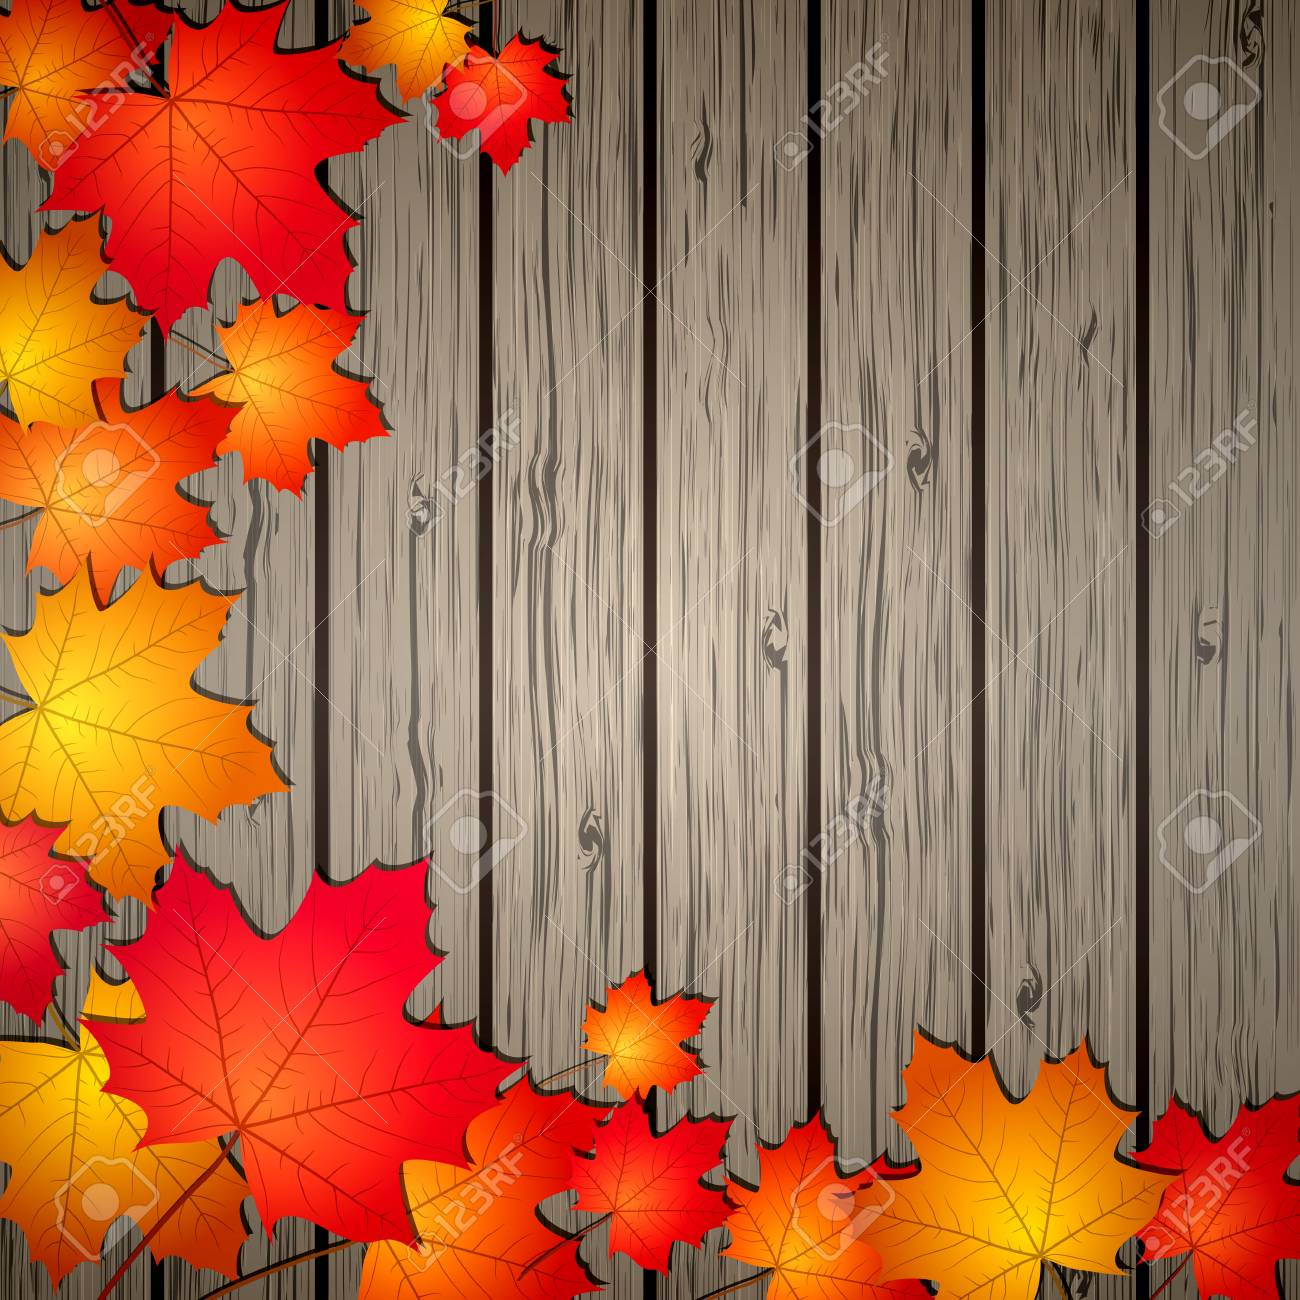 Autumn Leaves over wooden background illustration Stock Vector - 15170198